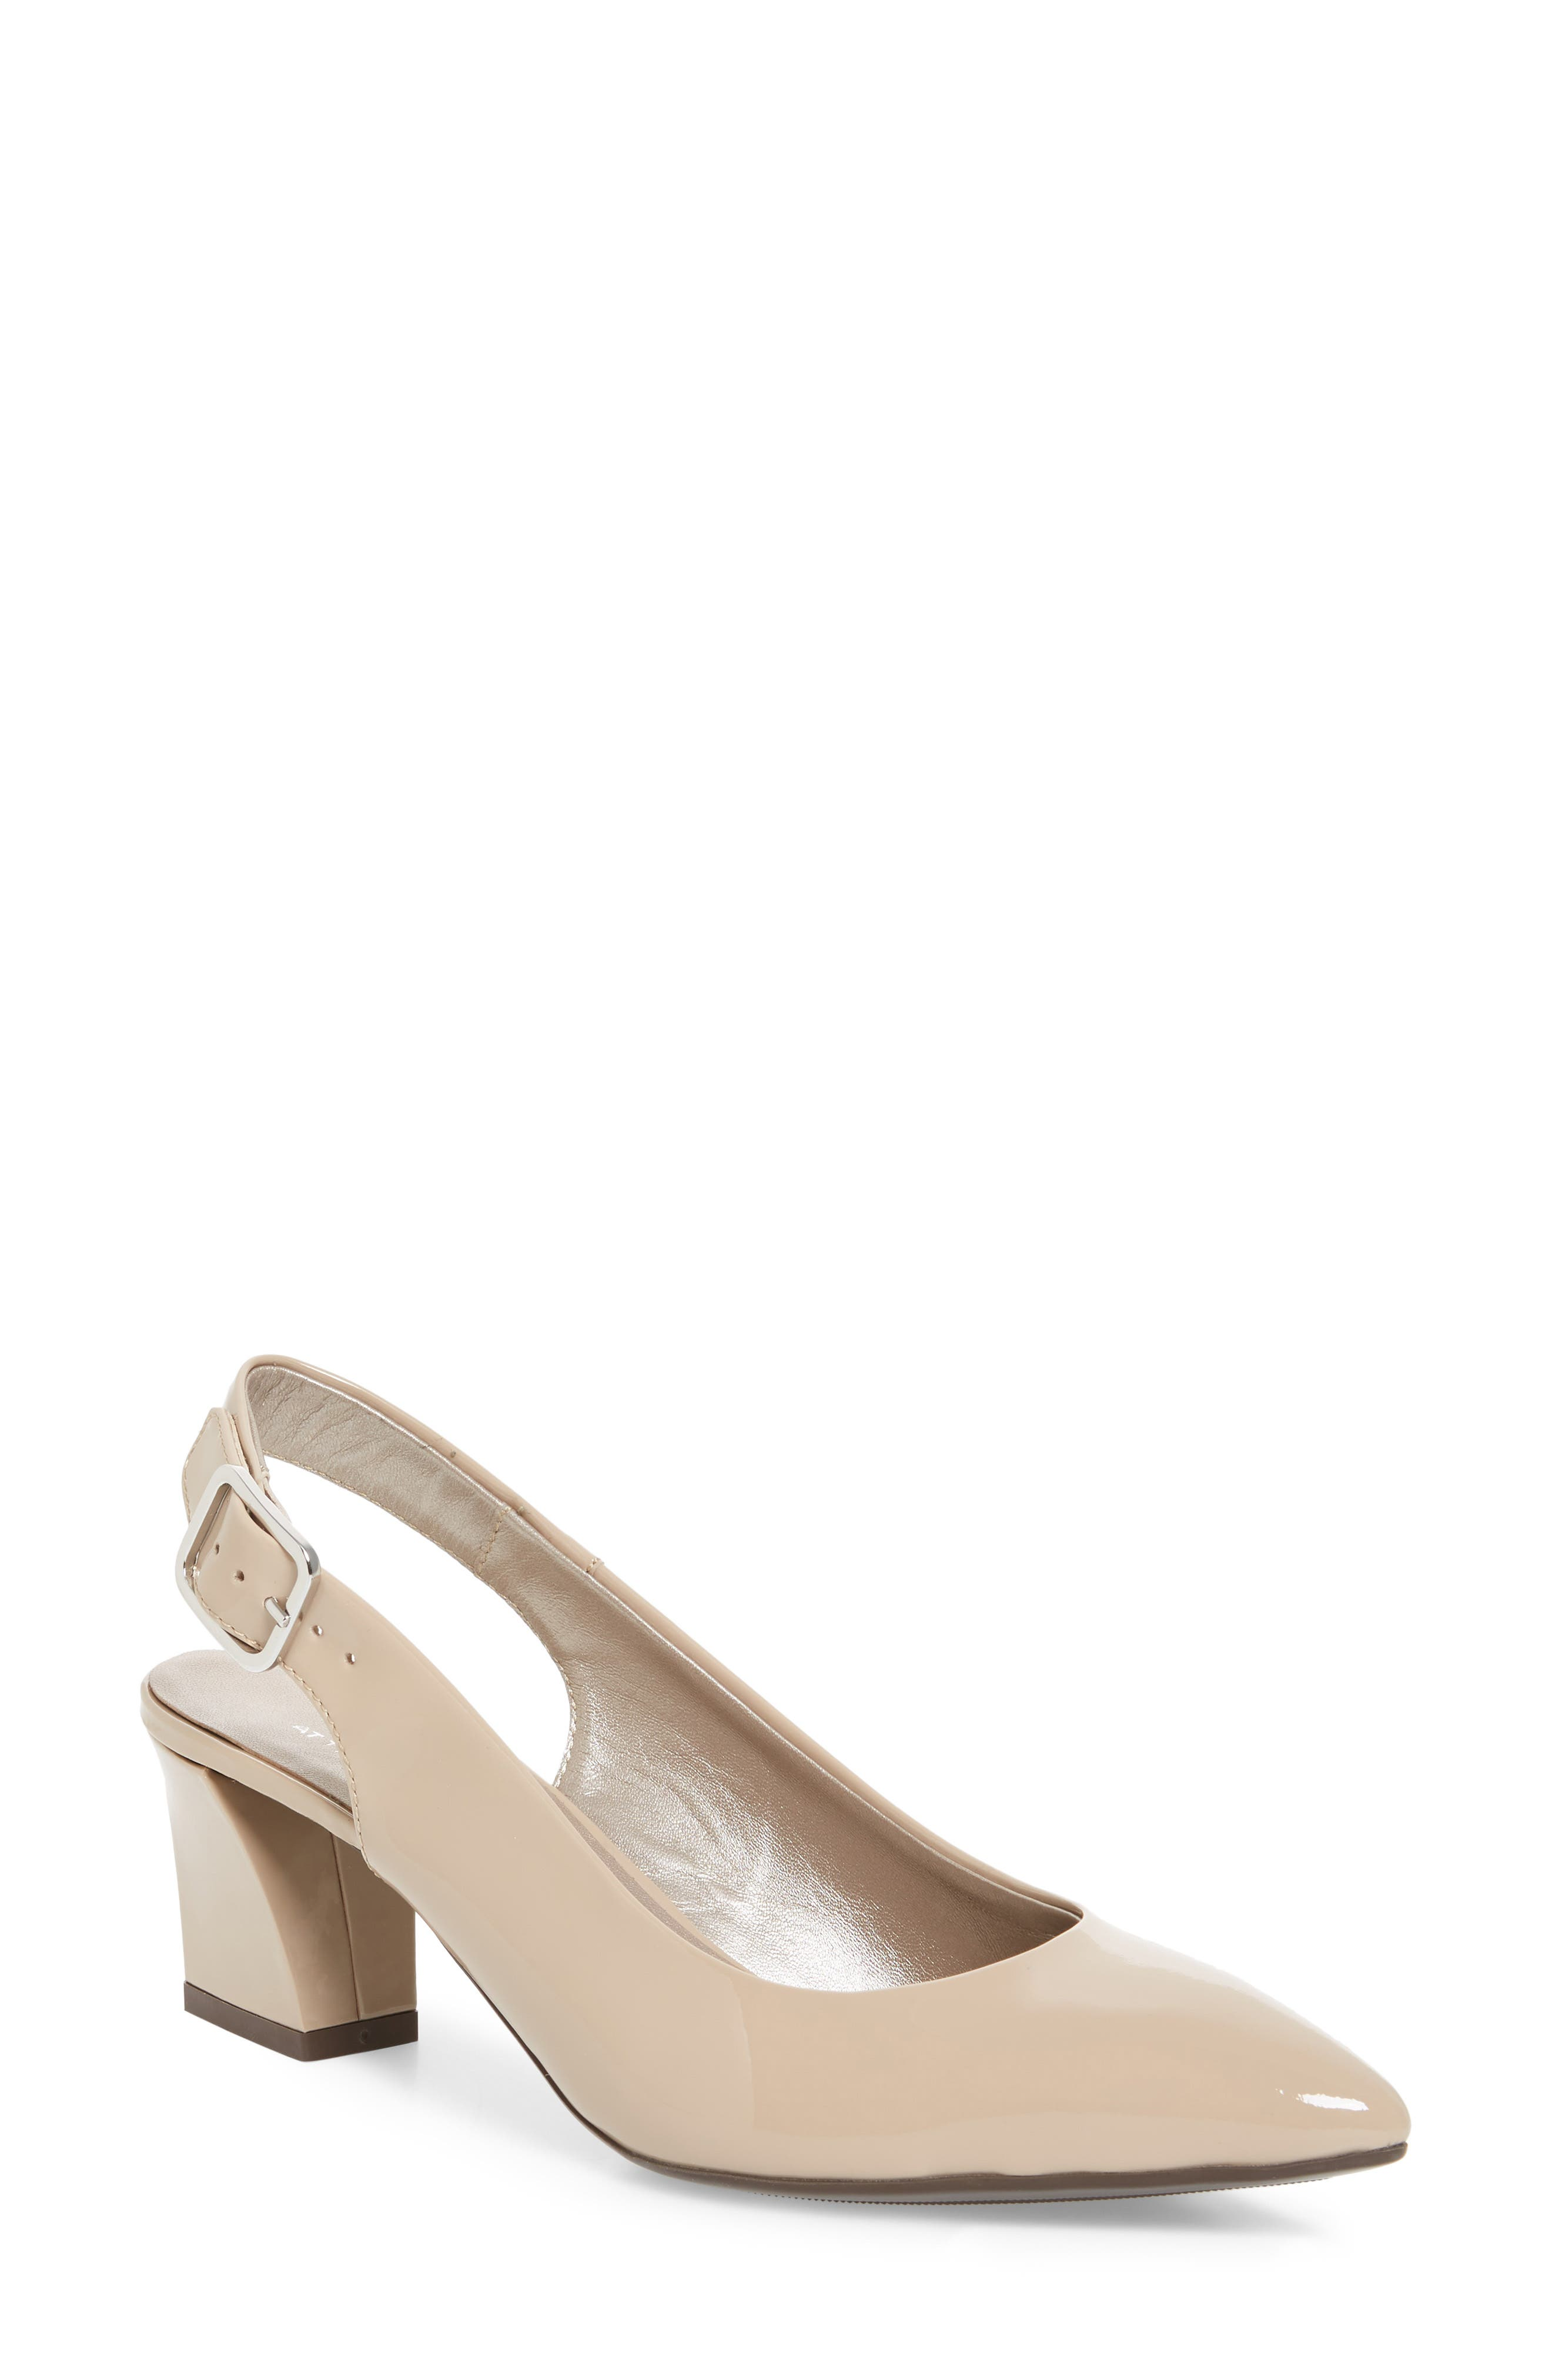 Block Heel Slingback Pump,                             Main thumbnail 1, color,                             MARBLE LEATHER